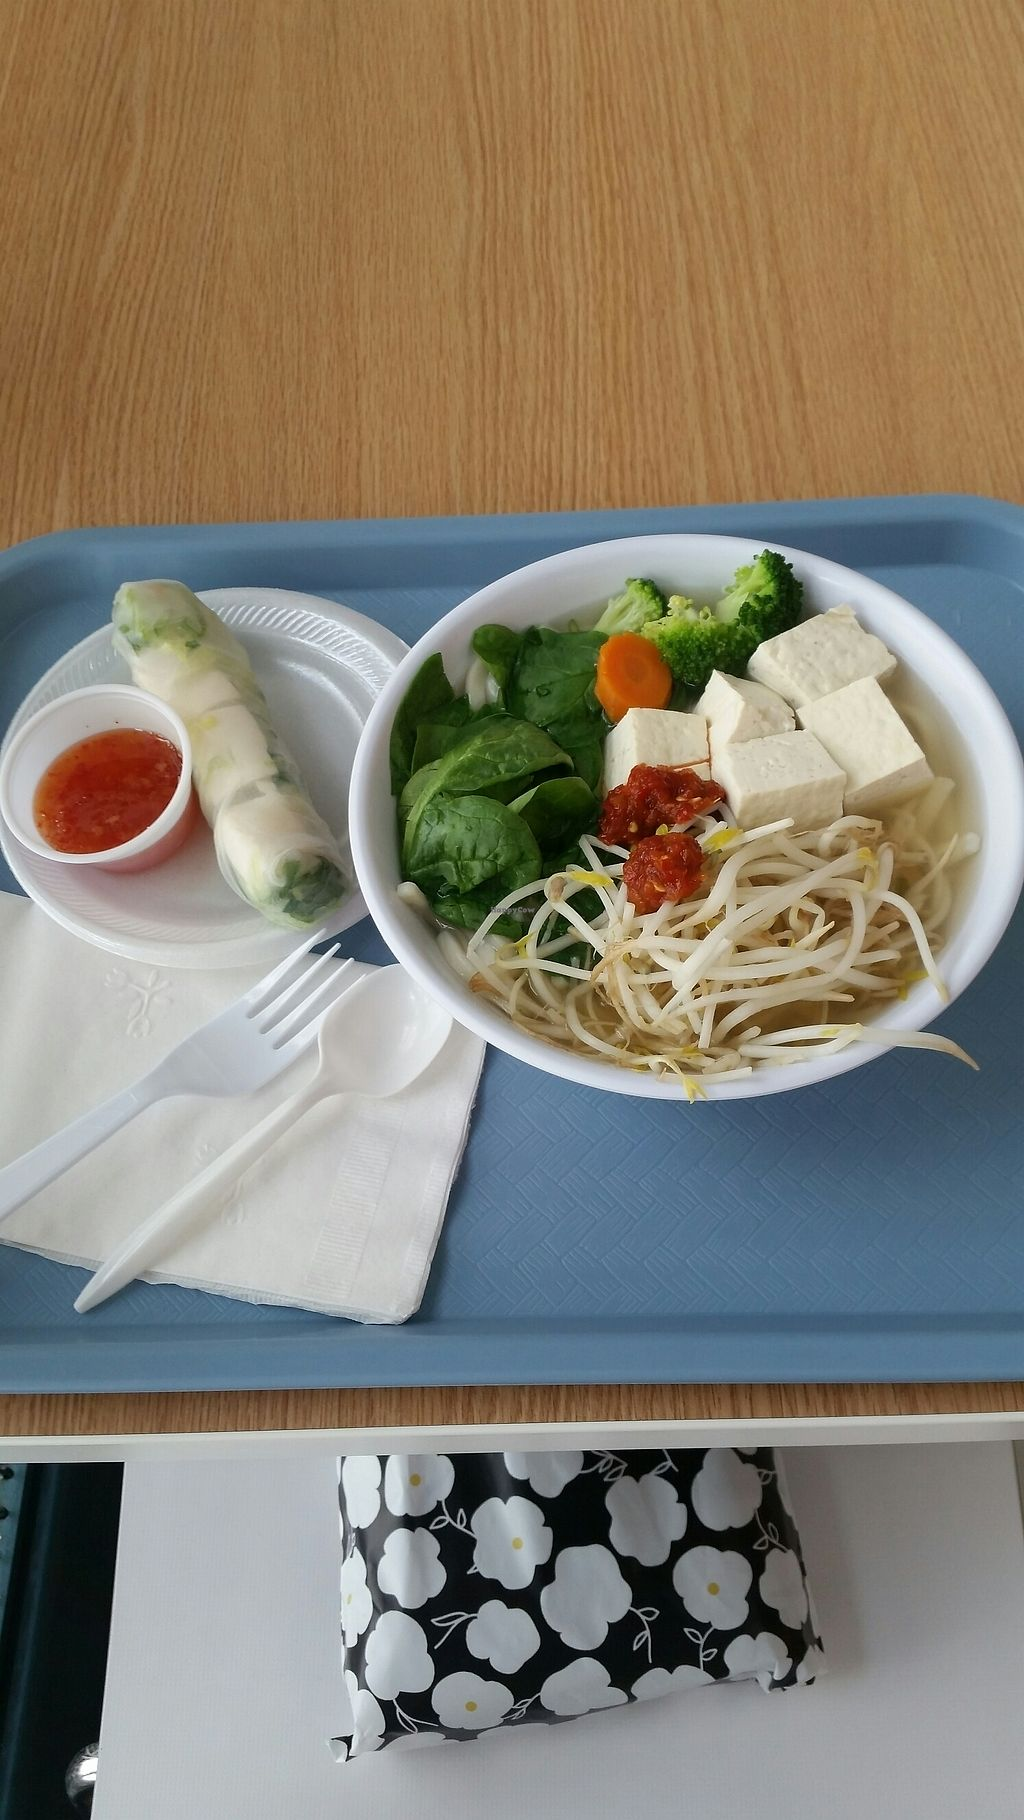 """Photo of Souper Bowl  by <a href=""""/members/profile/Christel79"""">Christel79</a> <br/>veggie noodle soup and a tofu spring roll <br/> July 28, 2017  - <a href='/contact/abuse/image/16052/285719'>Report</a>"""